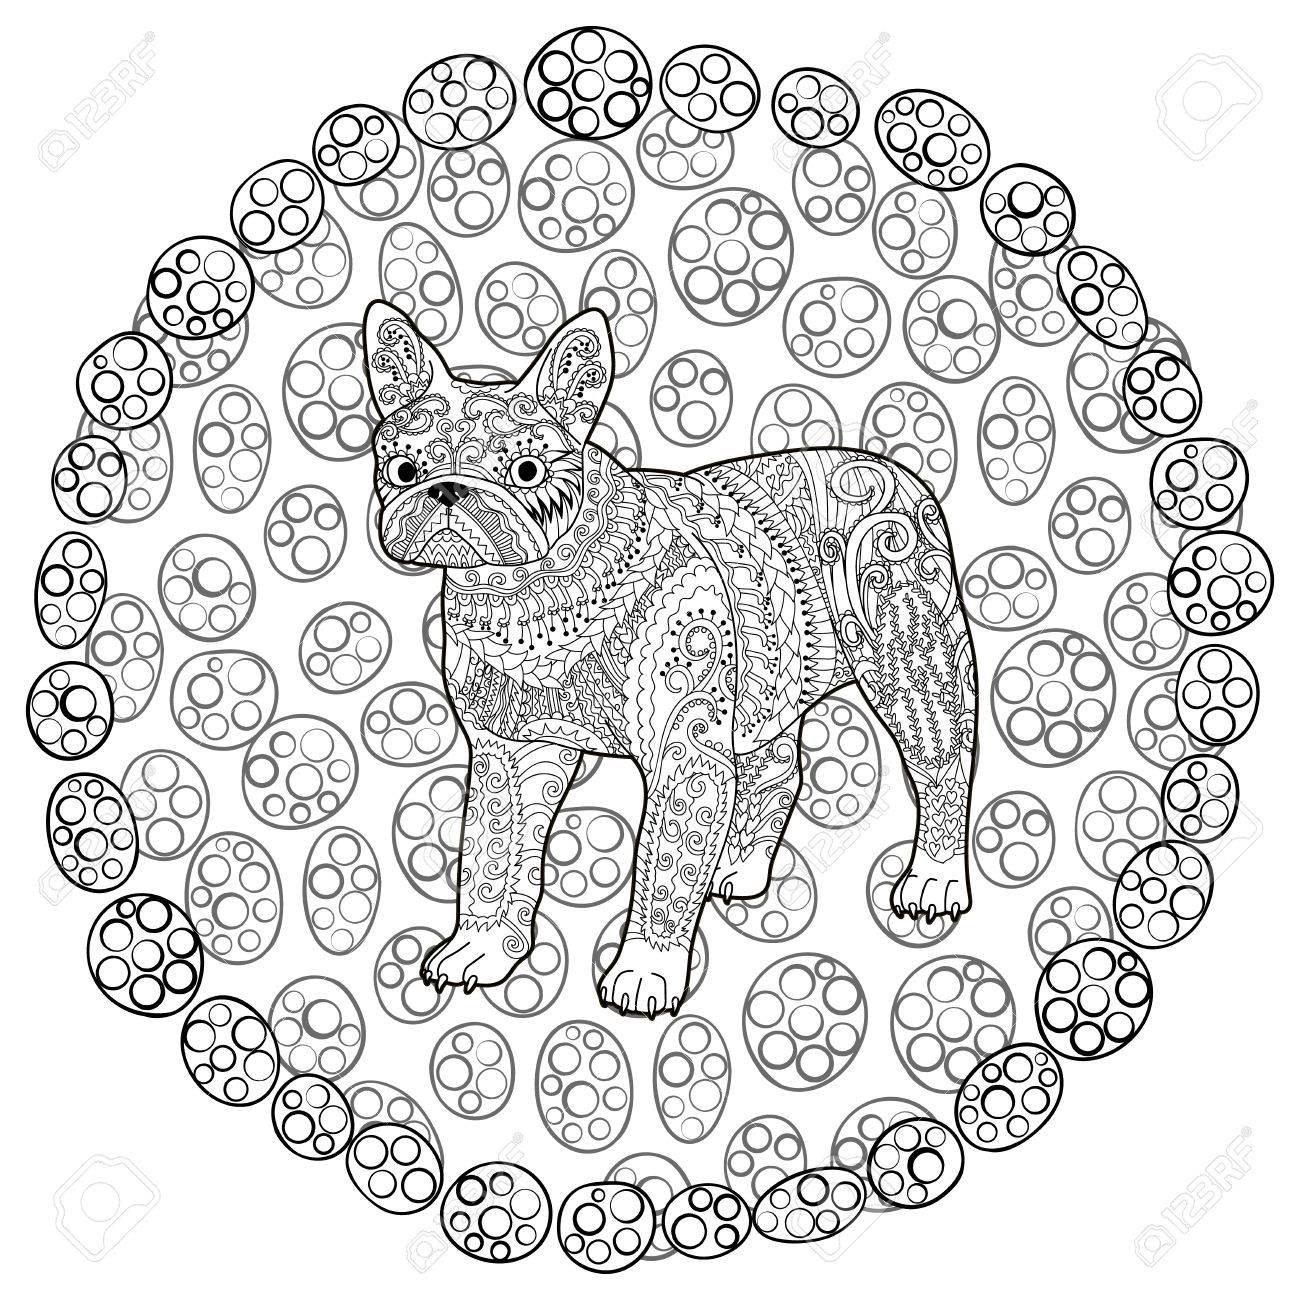 French Bulldog Puppy Coloring Pages